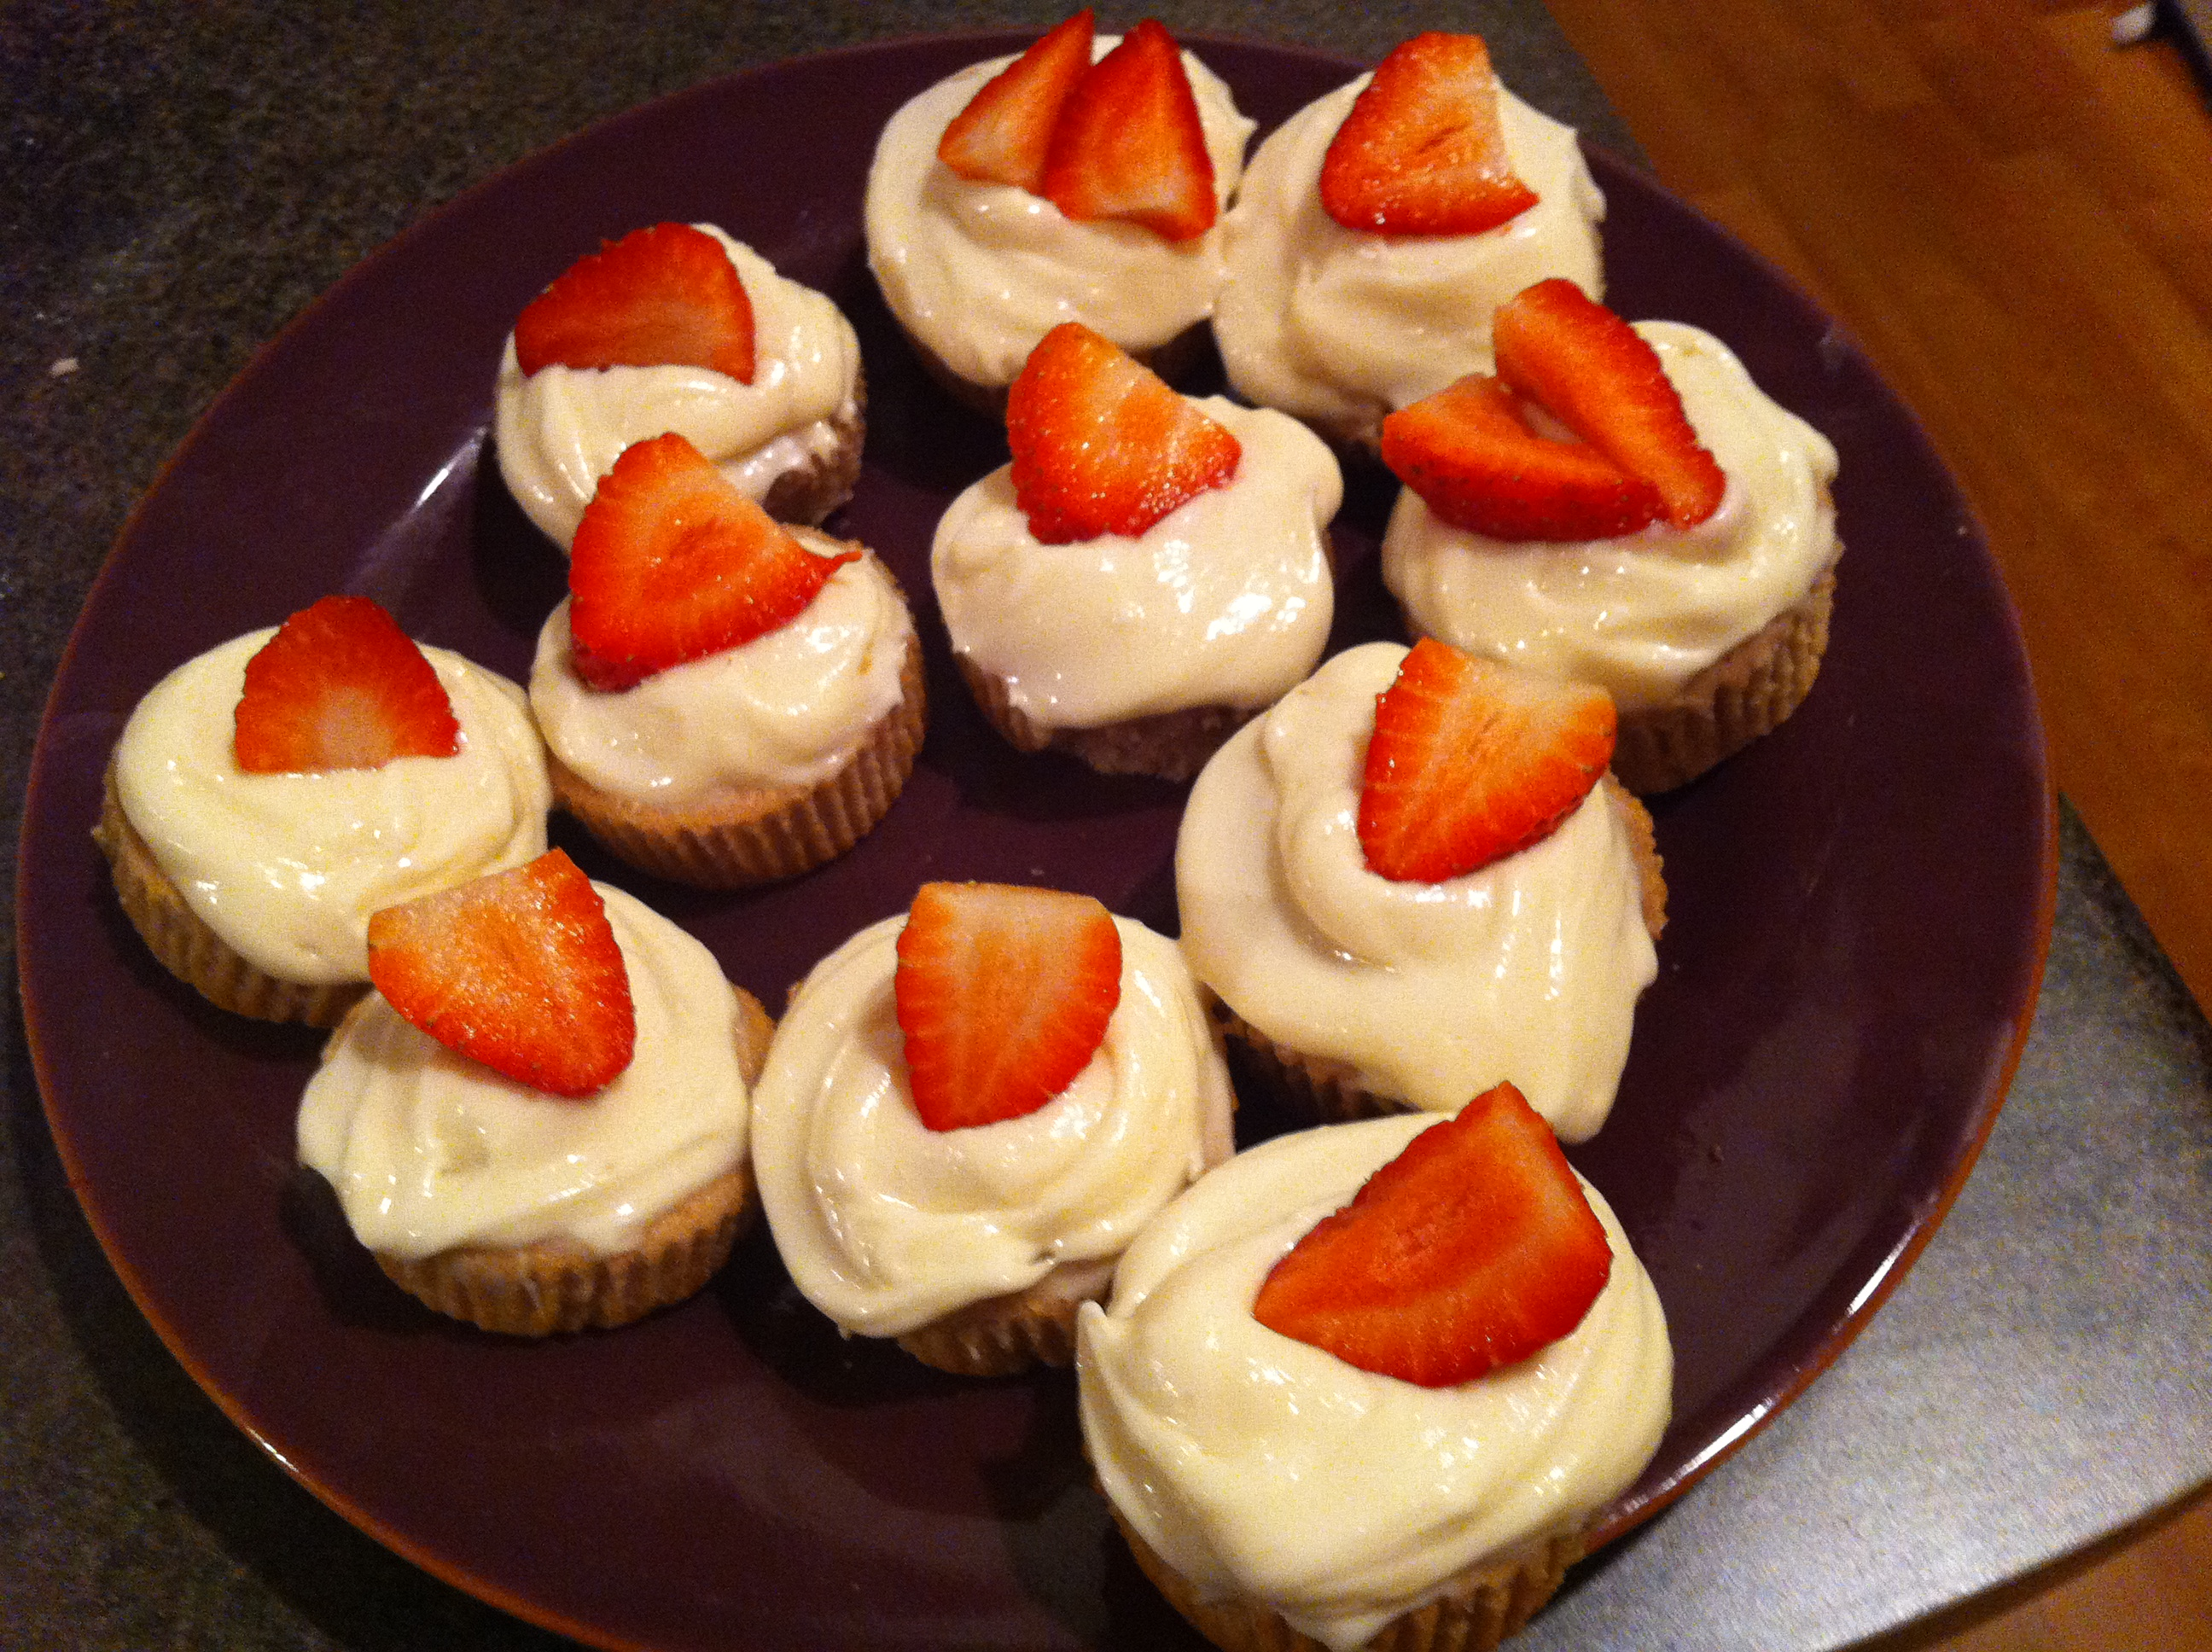 ... Cupcakes with Light Cream Cheese Frosting | The Realistic Nutritionist